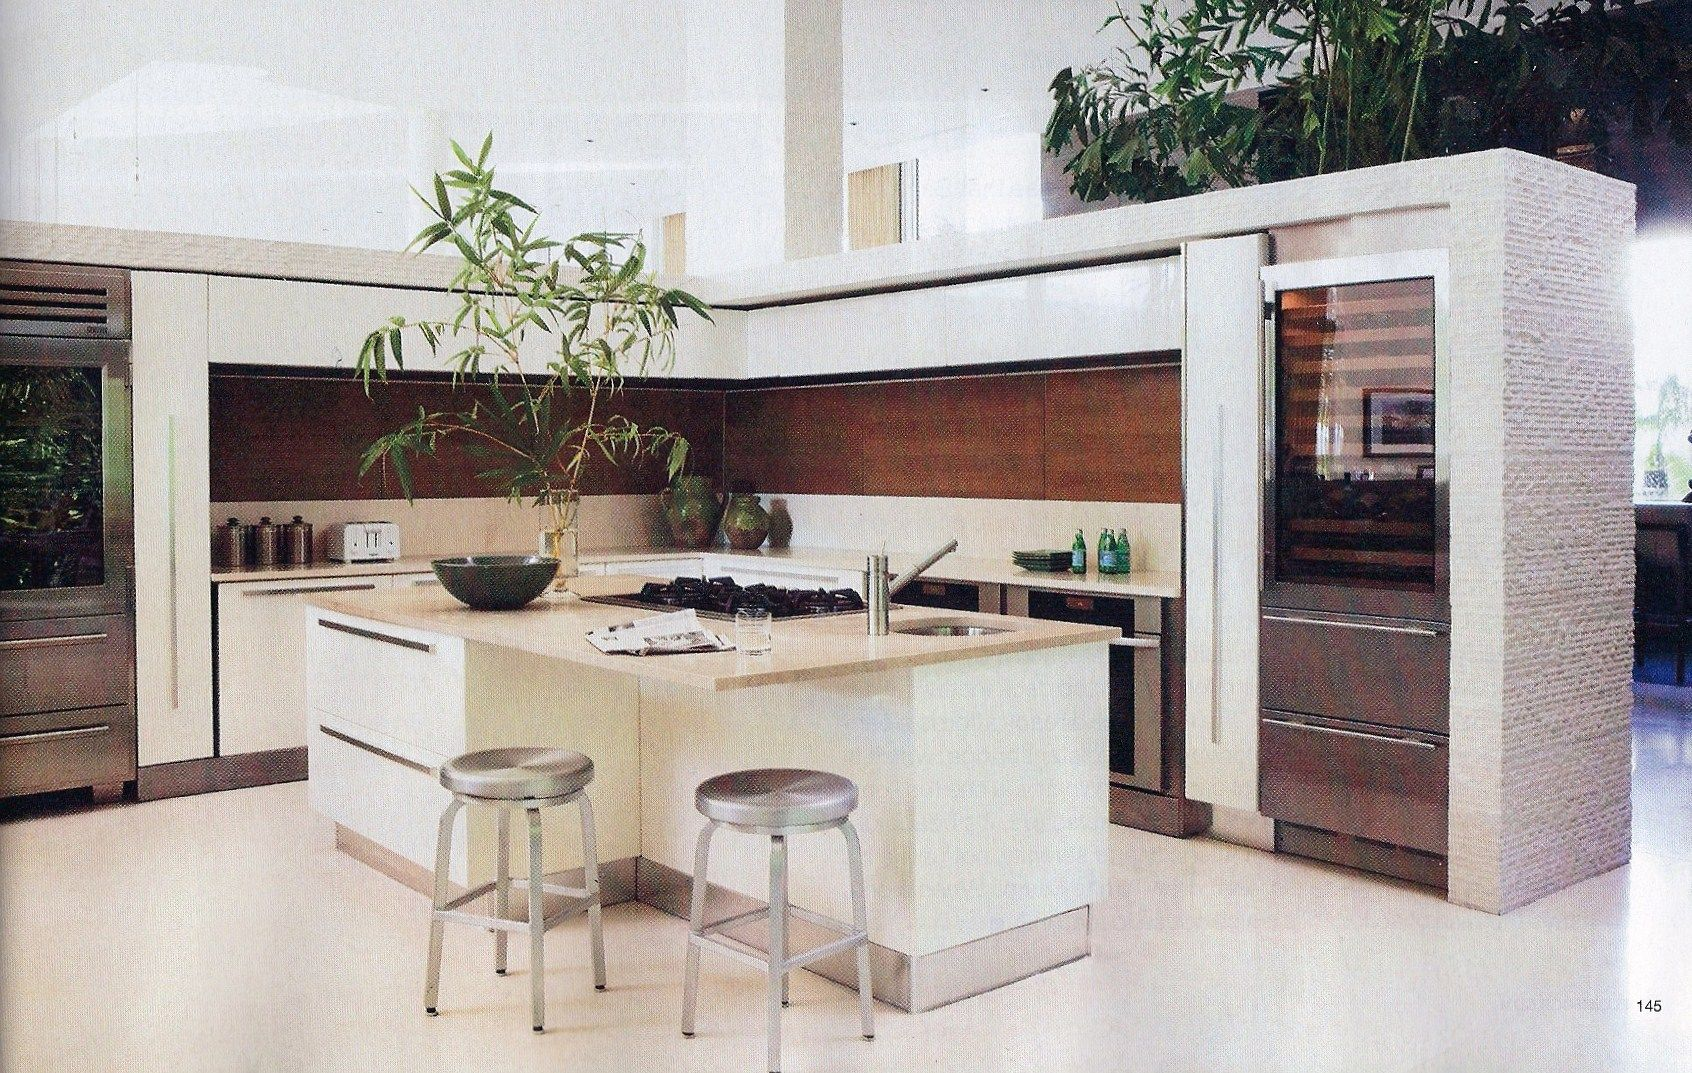 This 3 4 Wall Kitchen Design Is What I Am Basing My Class Kitchen Design Project From I Just Love It M Home Kitchens Freestanding Kitchen Celebrity Kitchens